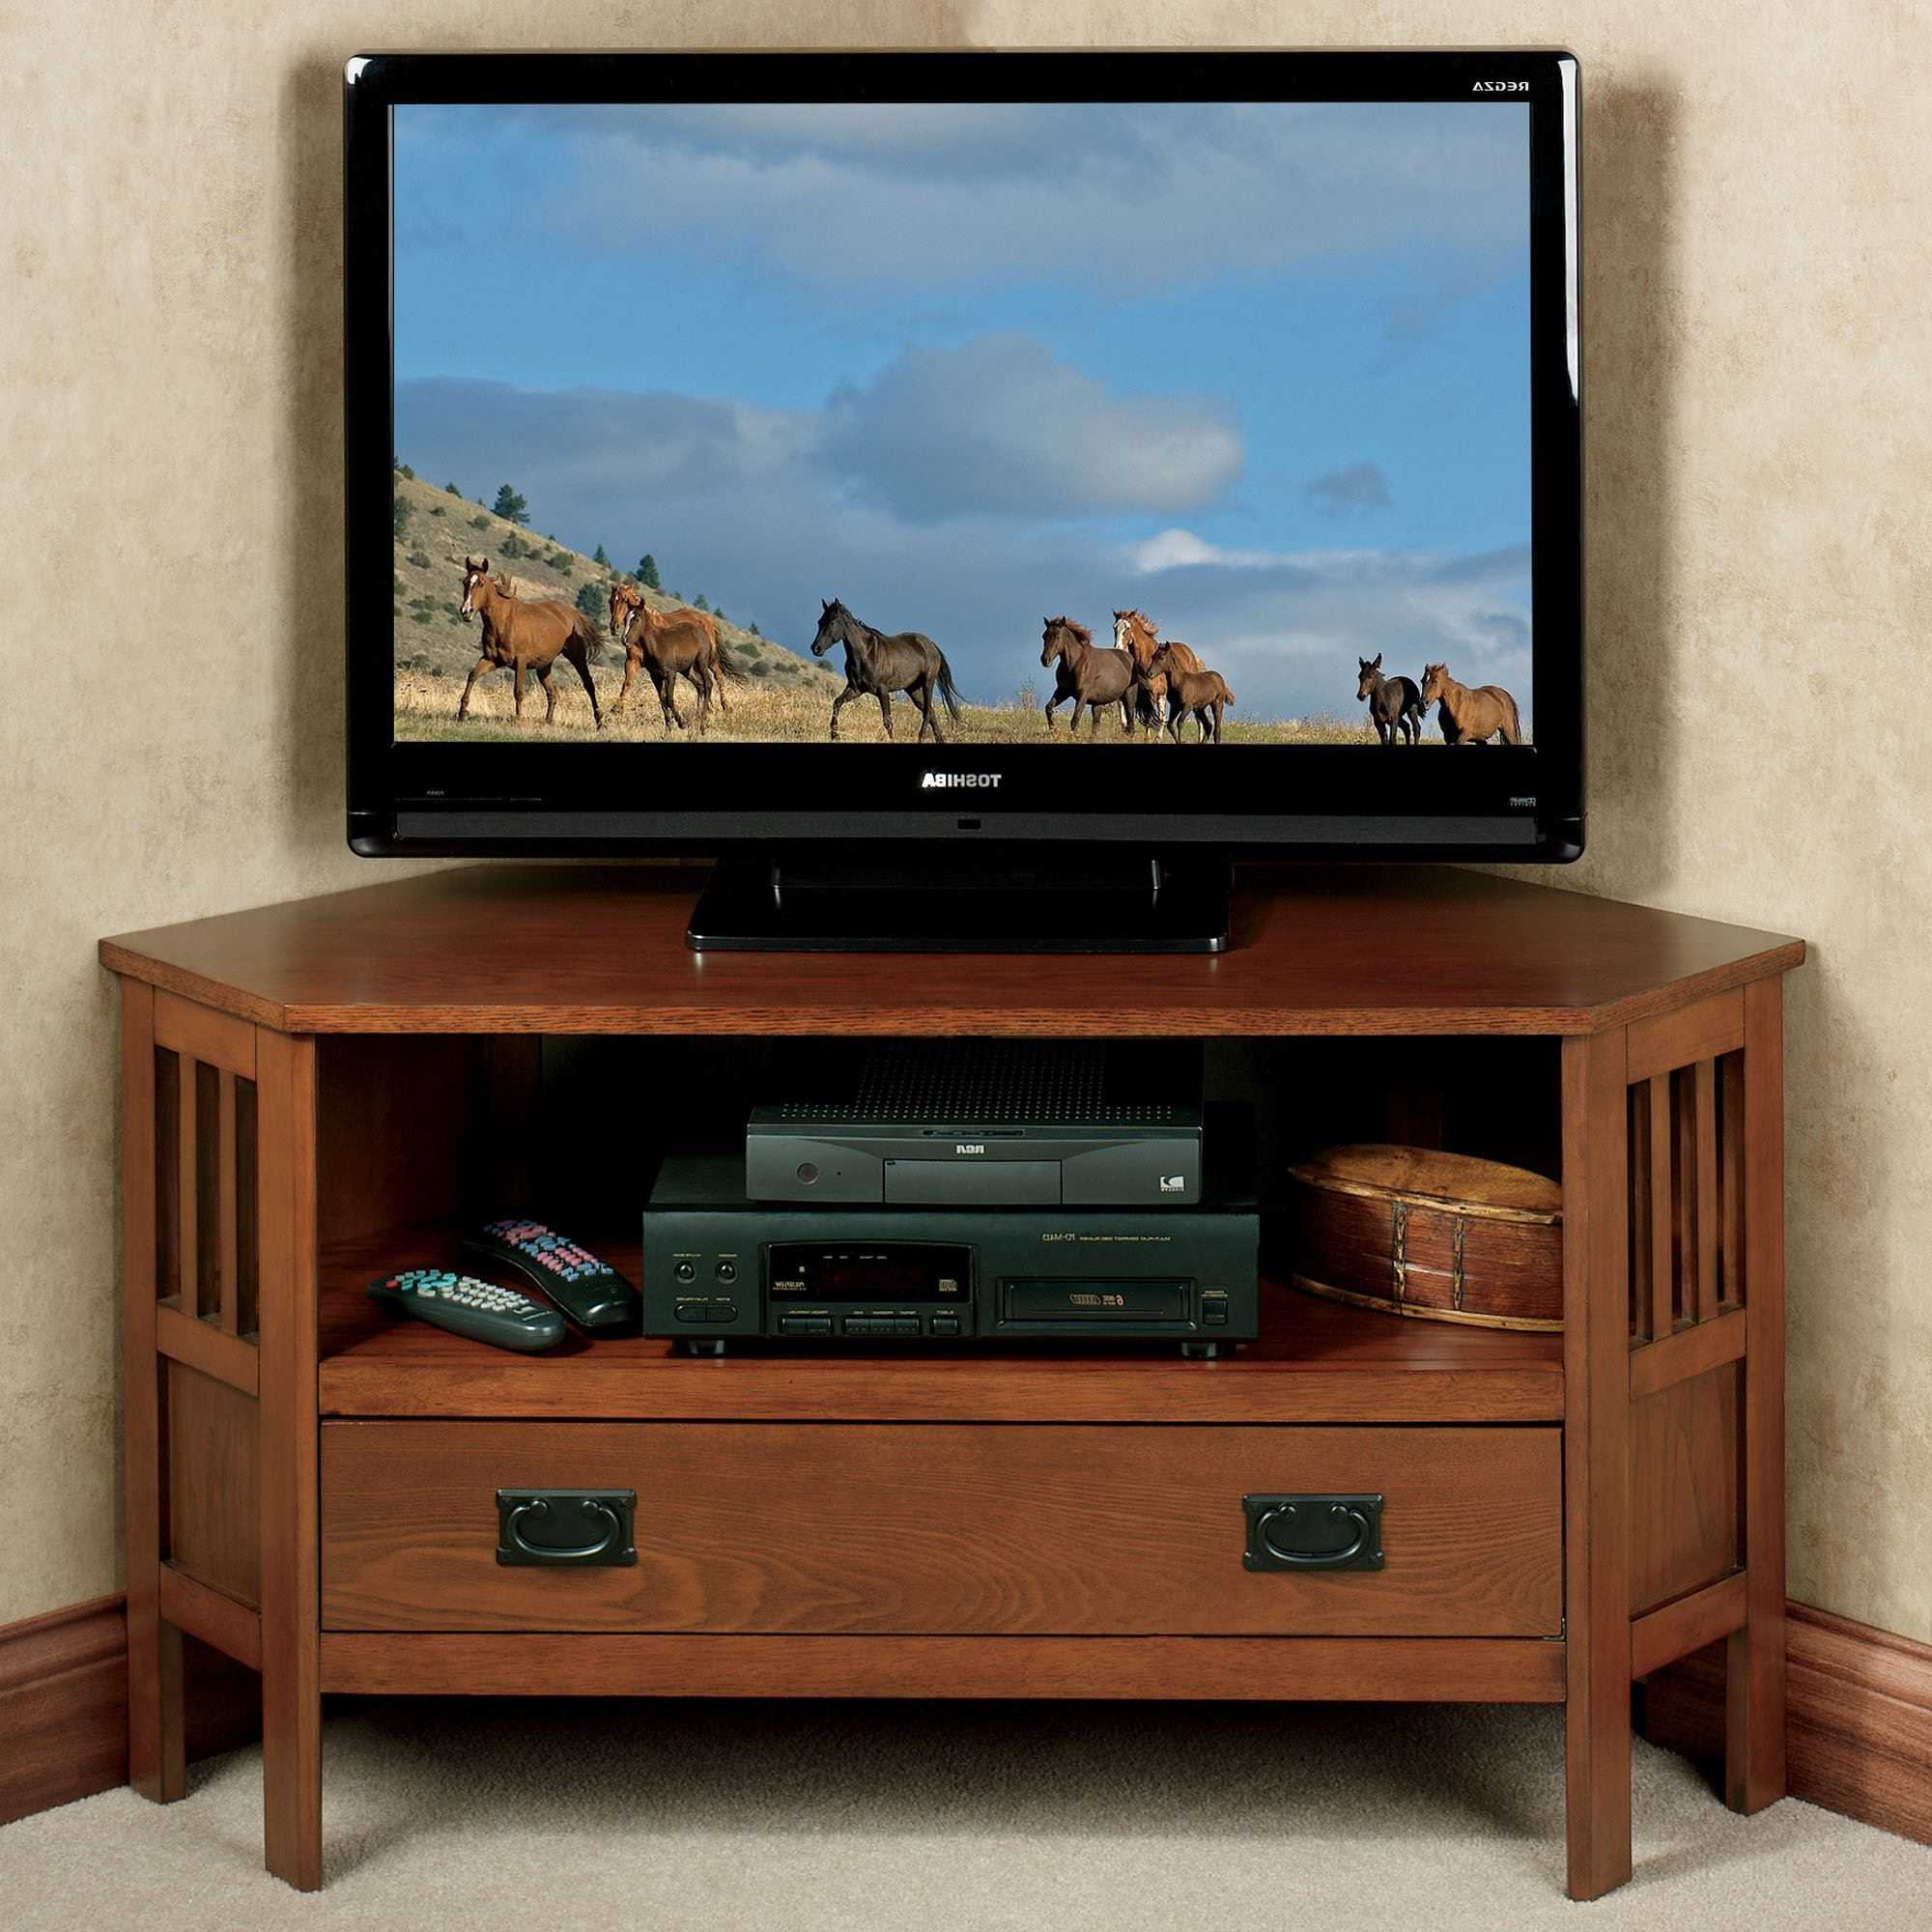 Most Recent Corner Tv Stands For 55 Inch Tv Inside Corner Tv Stand Amazon Tall For 60 Inch 55 Stands With Mount Drawers (View 7 of 20)